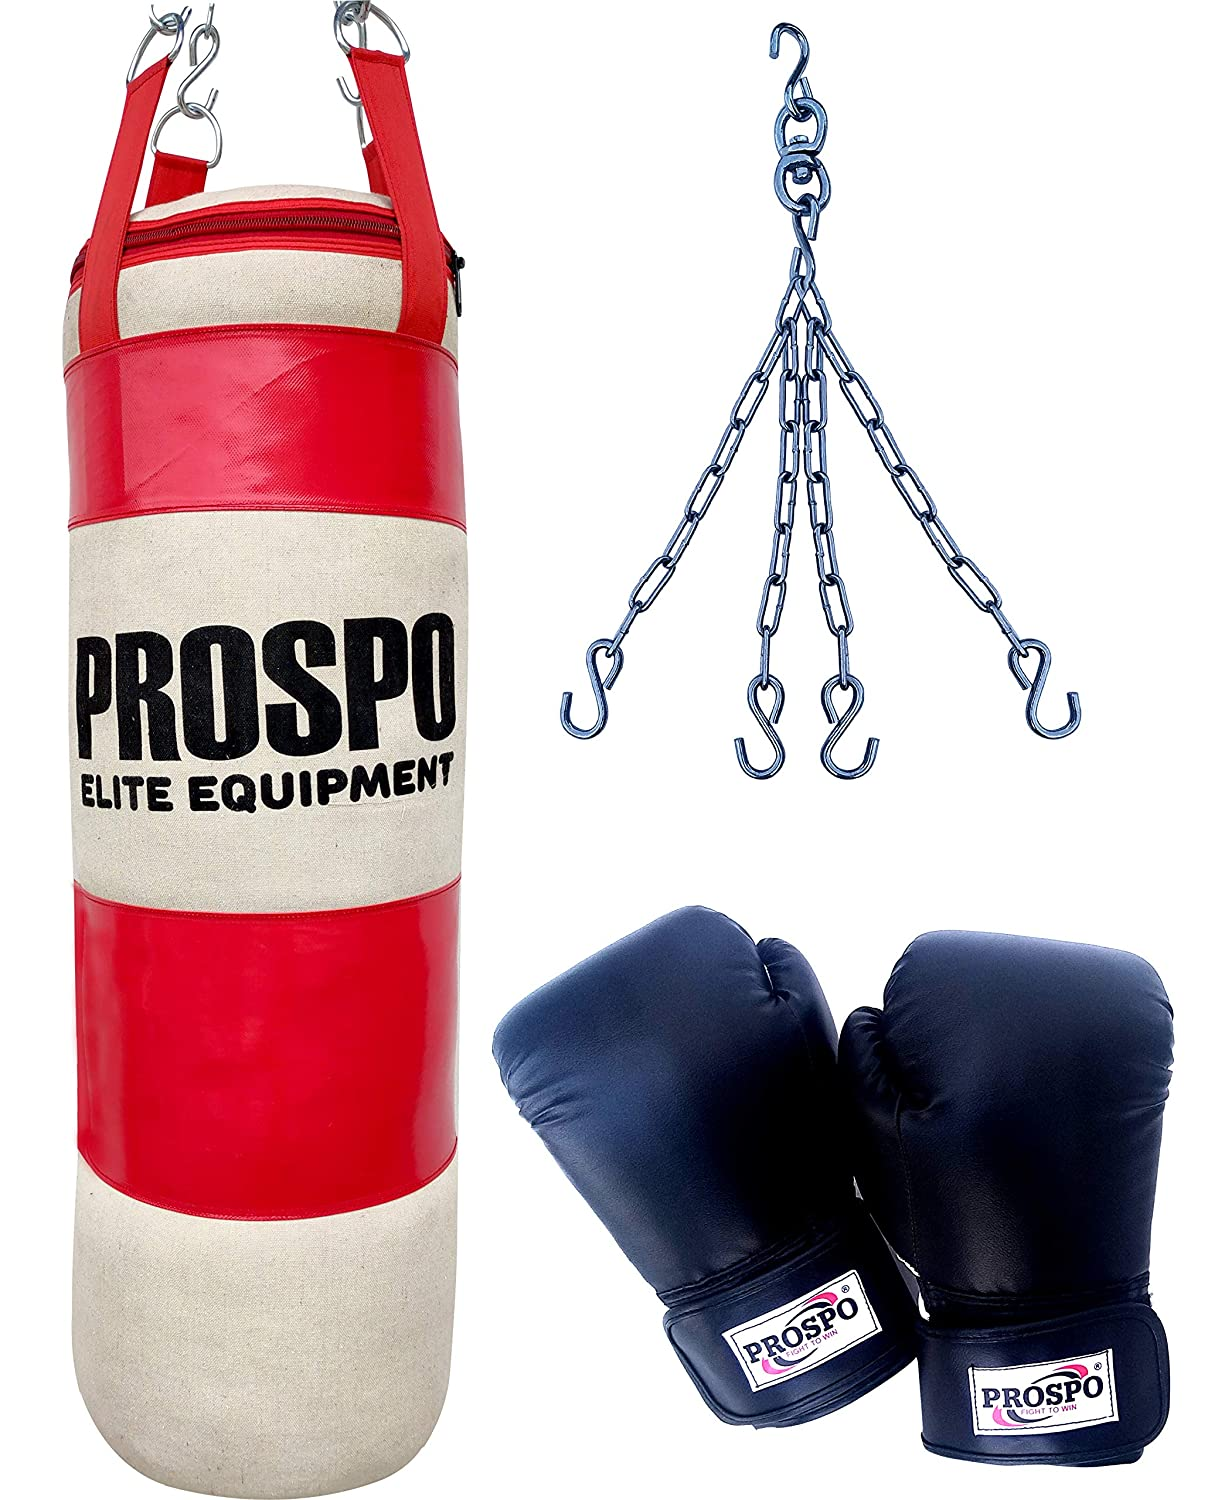 Prospo 3 Feet Extra Strong and Heavy RED&White Canvas Punching Bag with Hand wrap and Chain (Color May Vary)